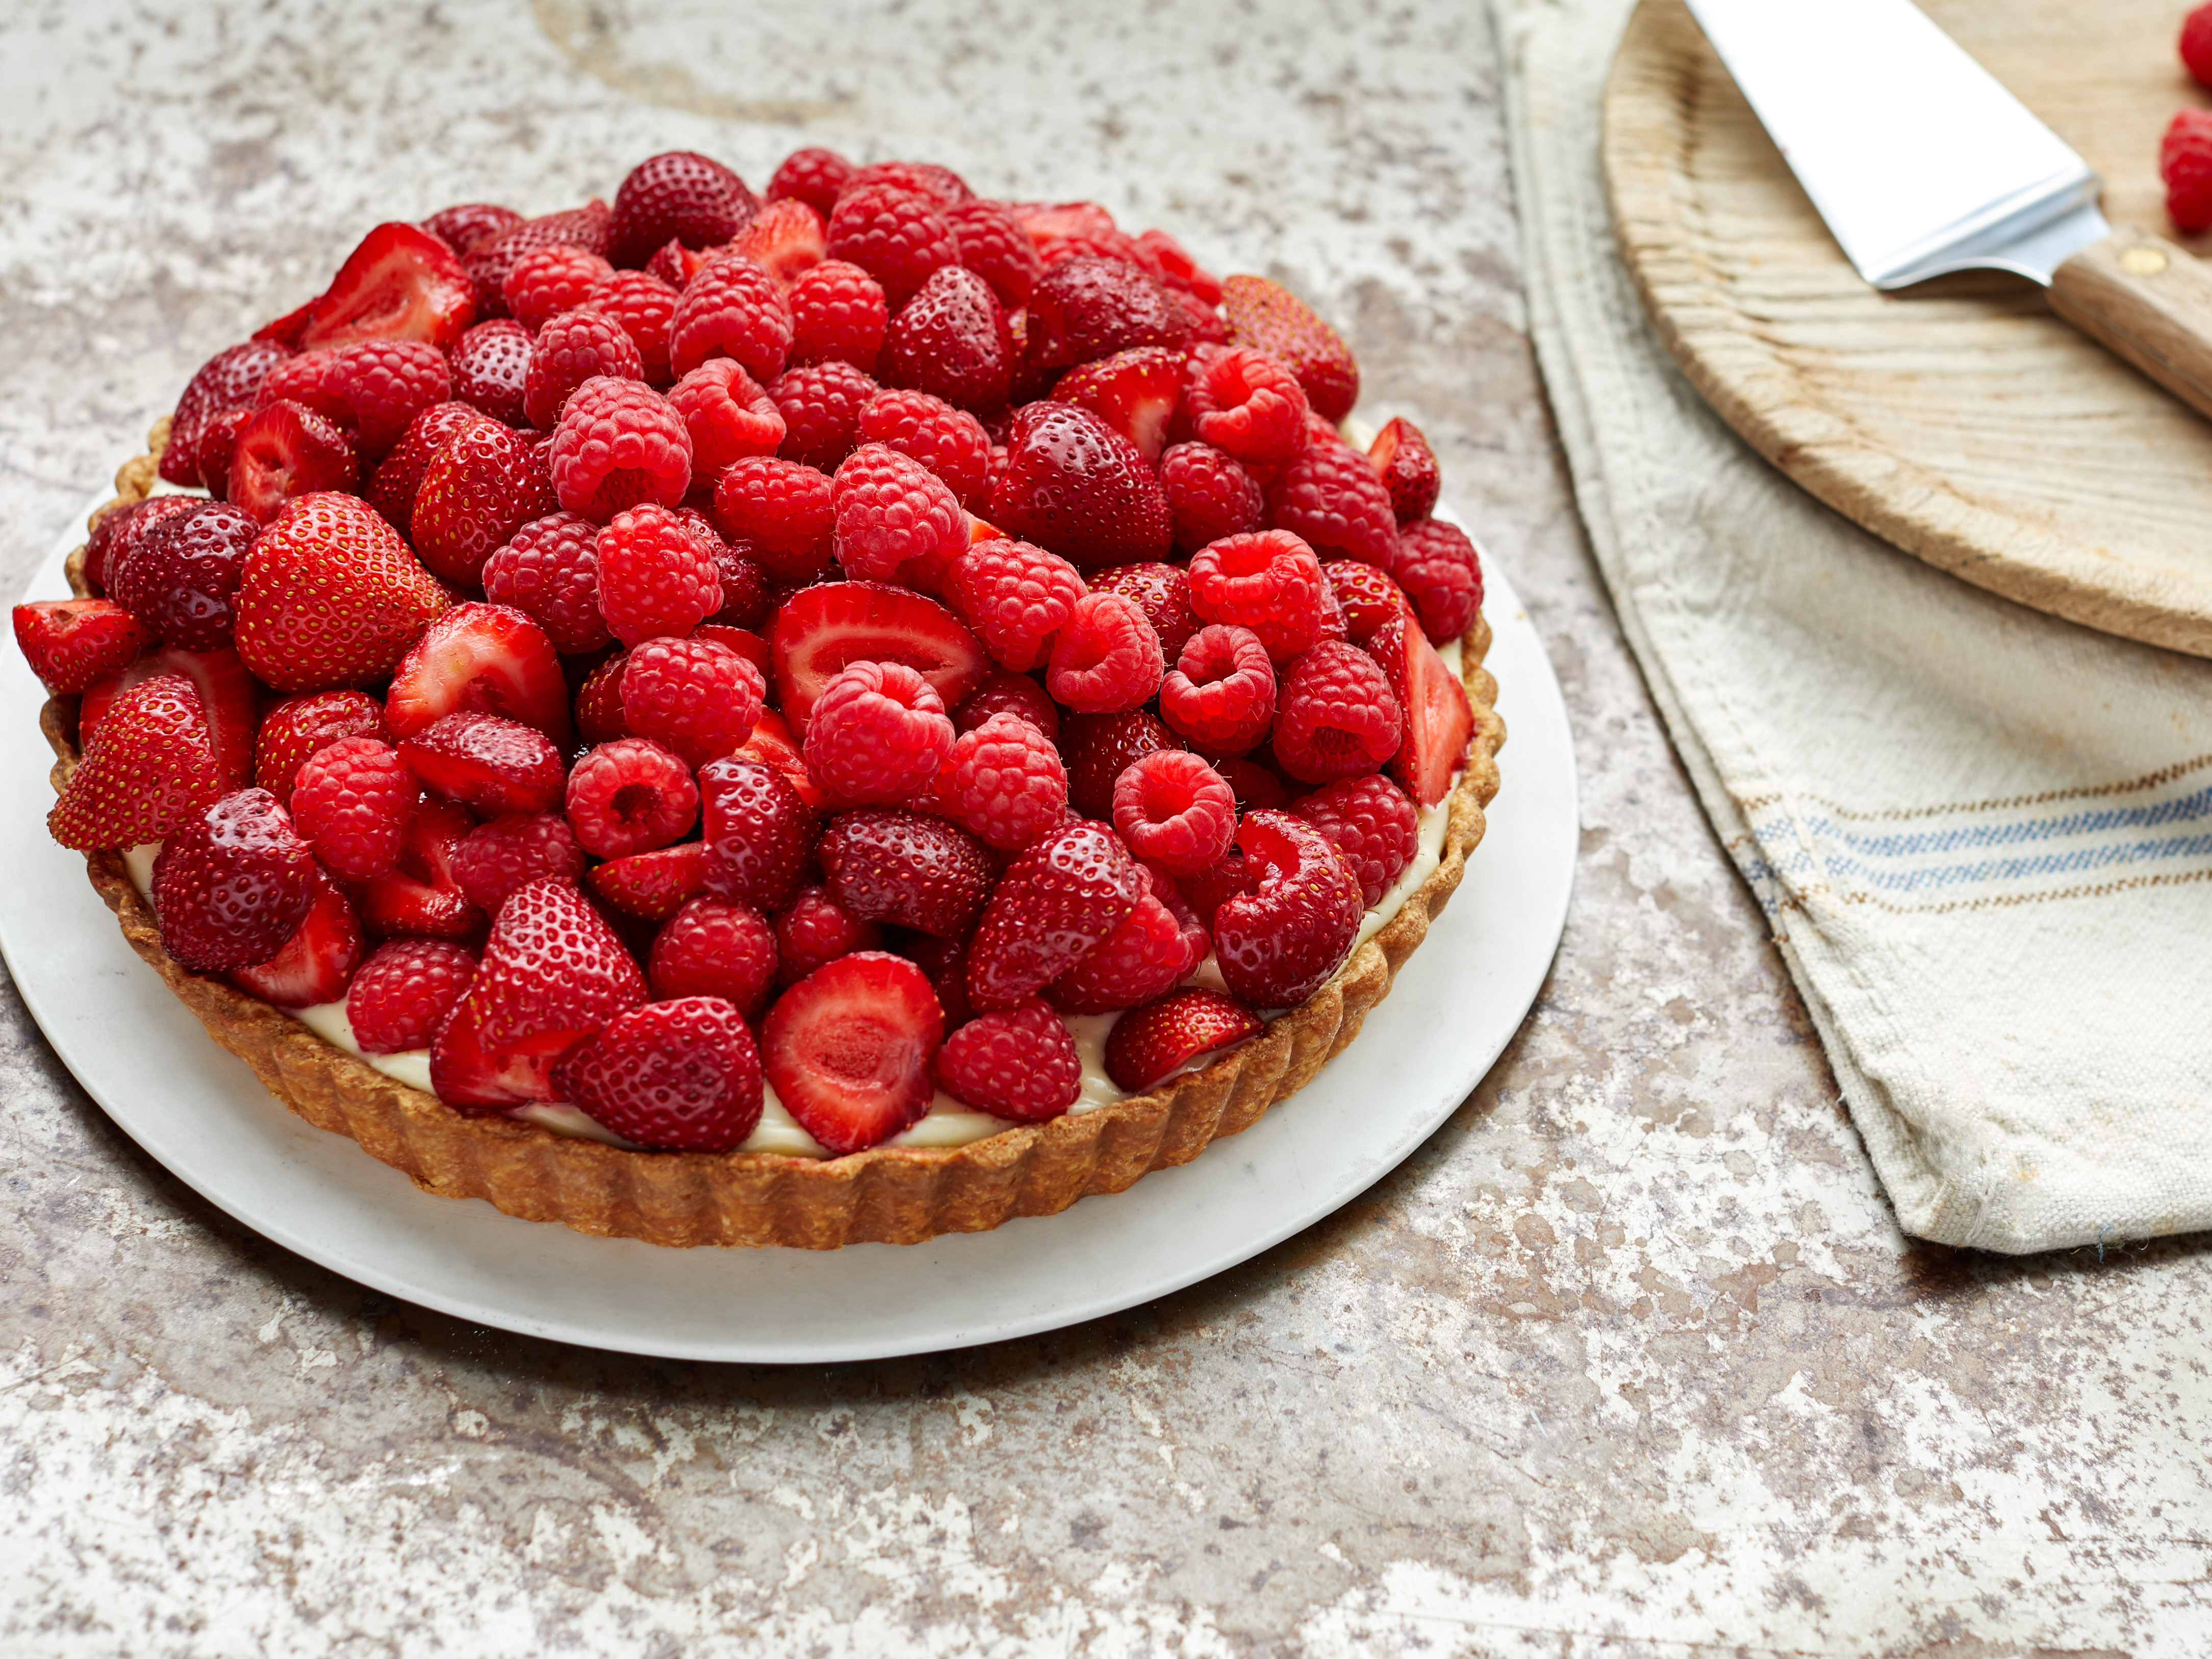 Martha's Fabulous Fruit Tart Makes the Most of Juicy Summer Berries